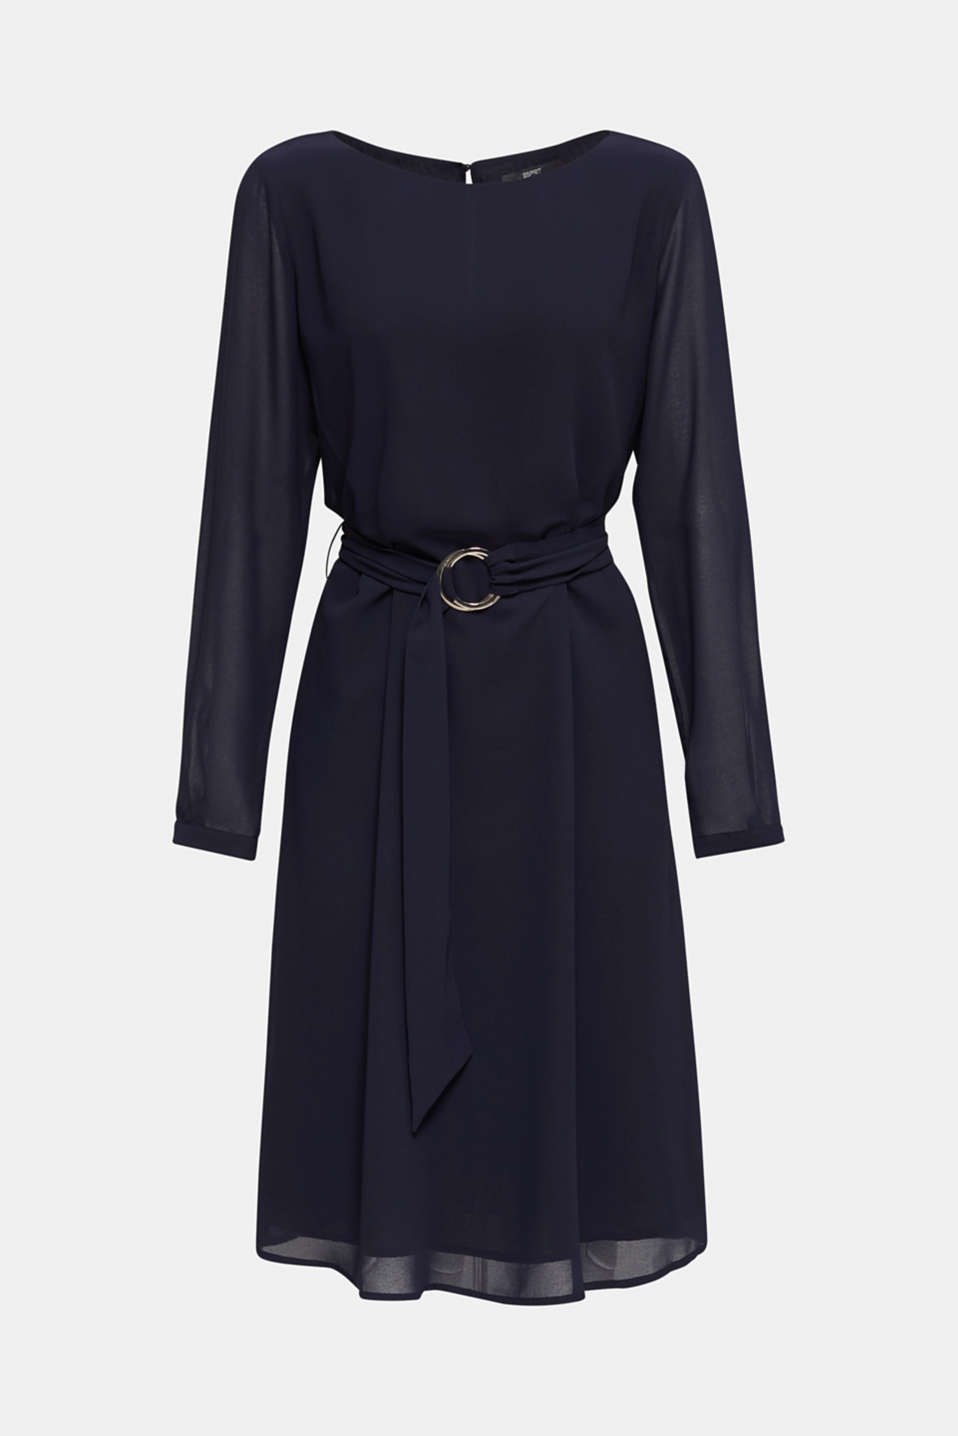 Flowing chiffon dress with a belt, NAVY, detail image number 5